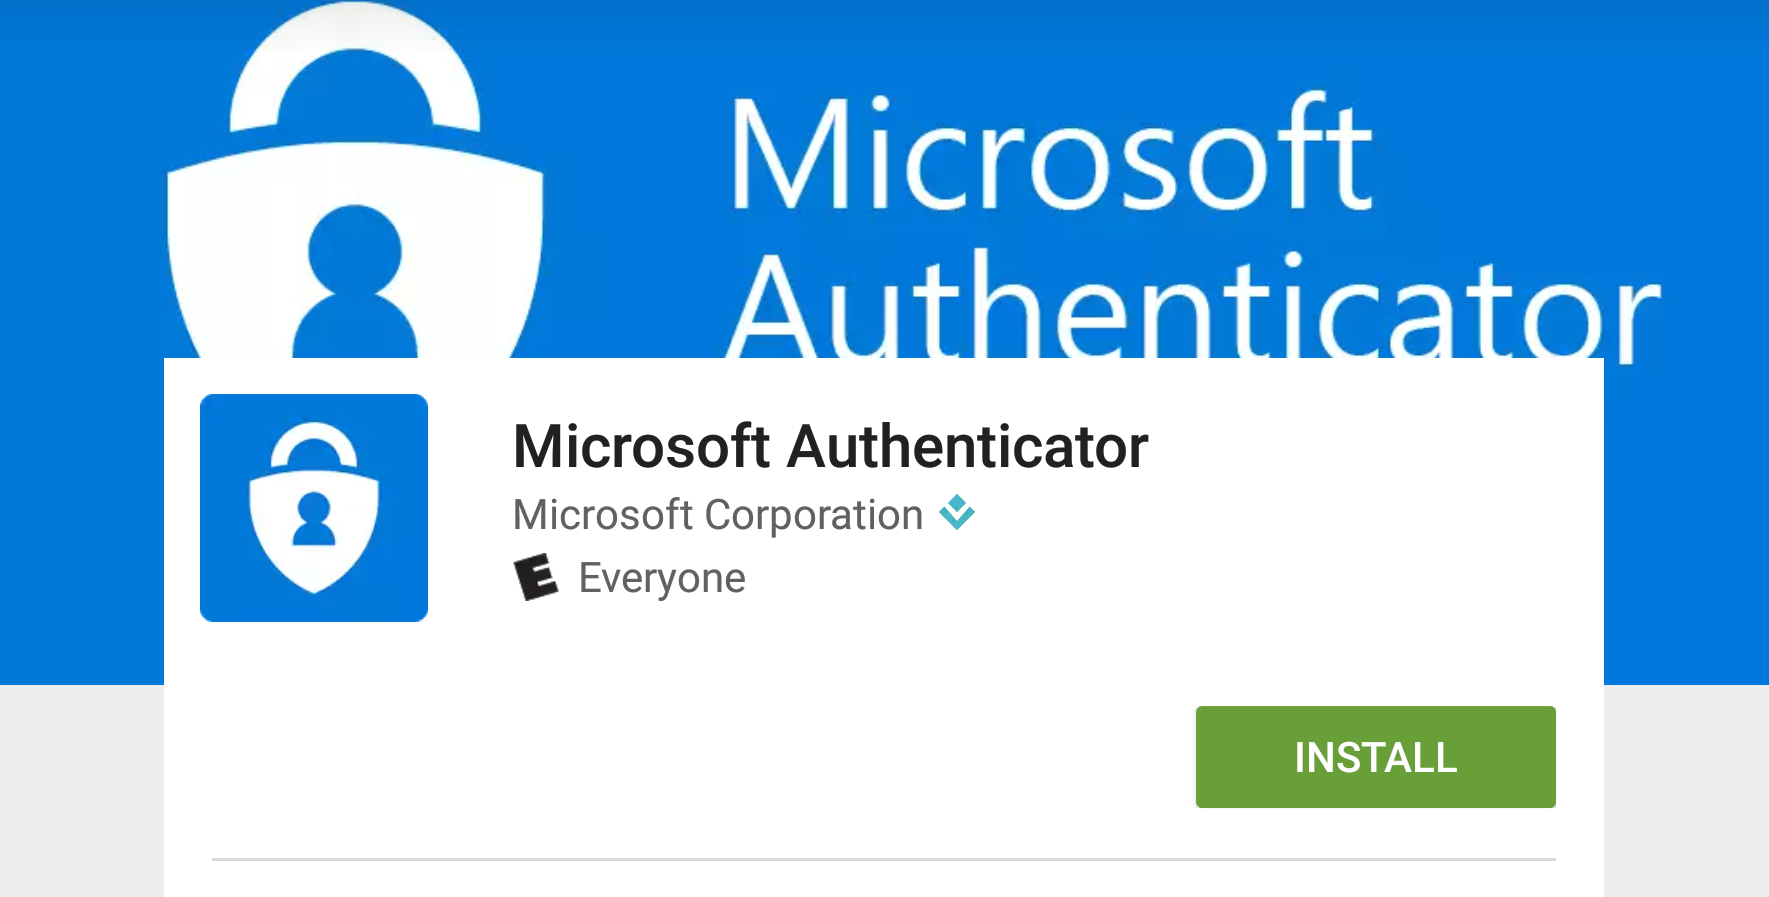 Microsoft Authenticator Combines Microsoft S Authenticator